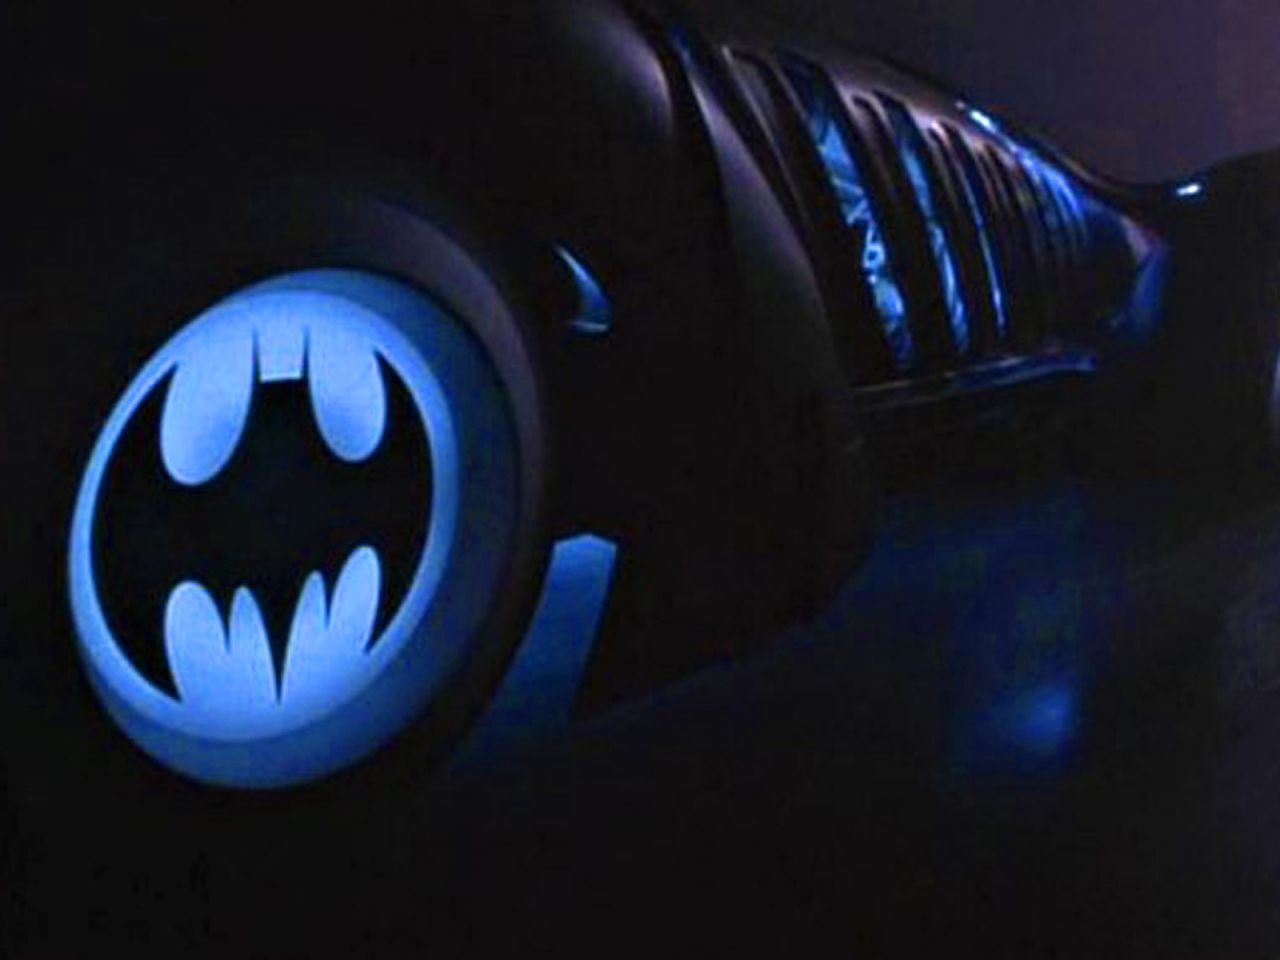 Batman Logo On Batmobile Wheels Wallpaper 1280x960